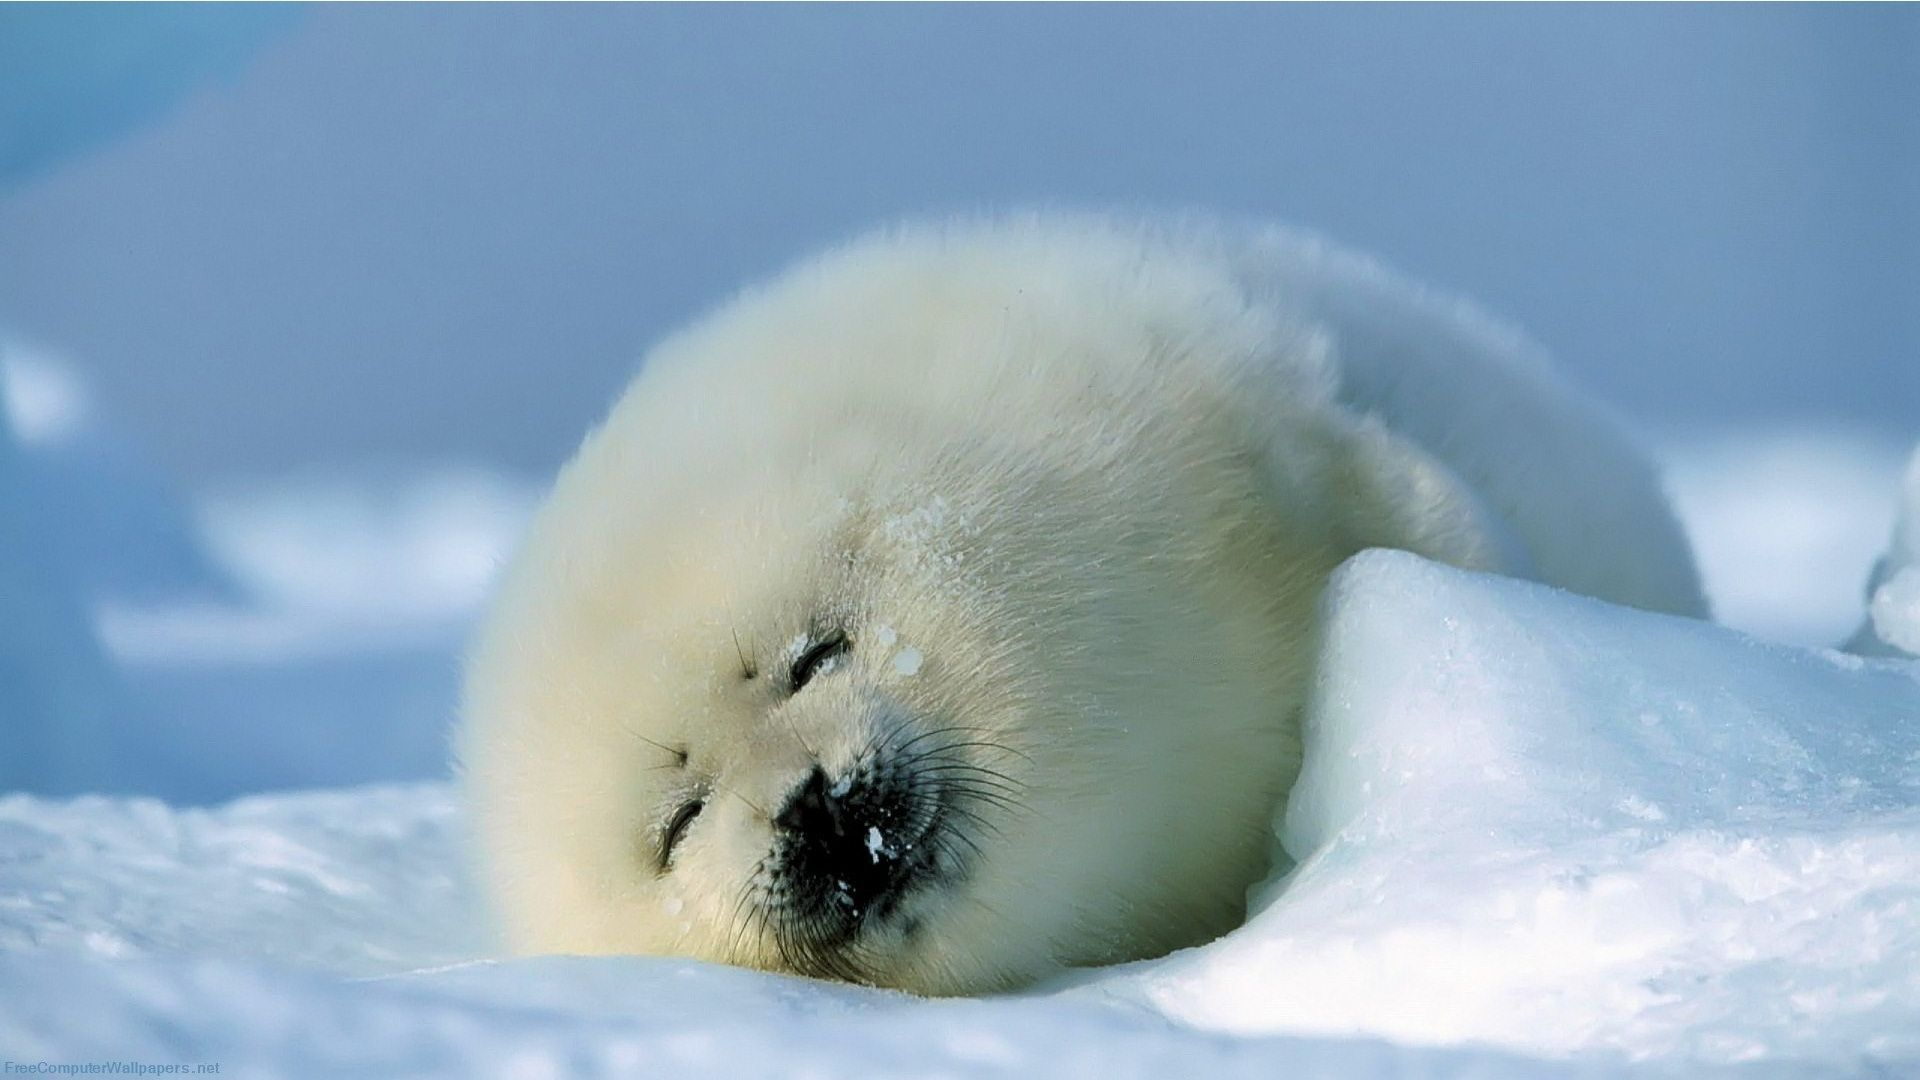 This is such a cute little seal! It must be quite tired...